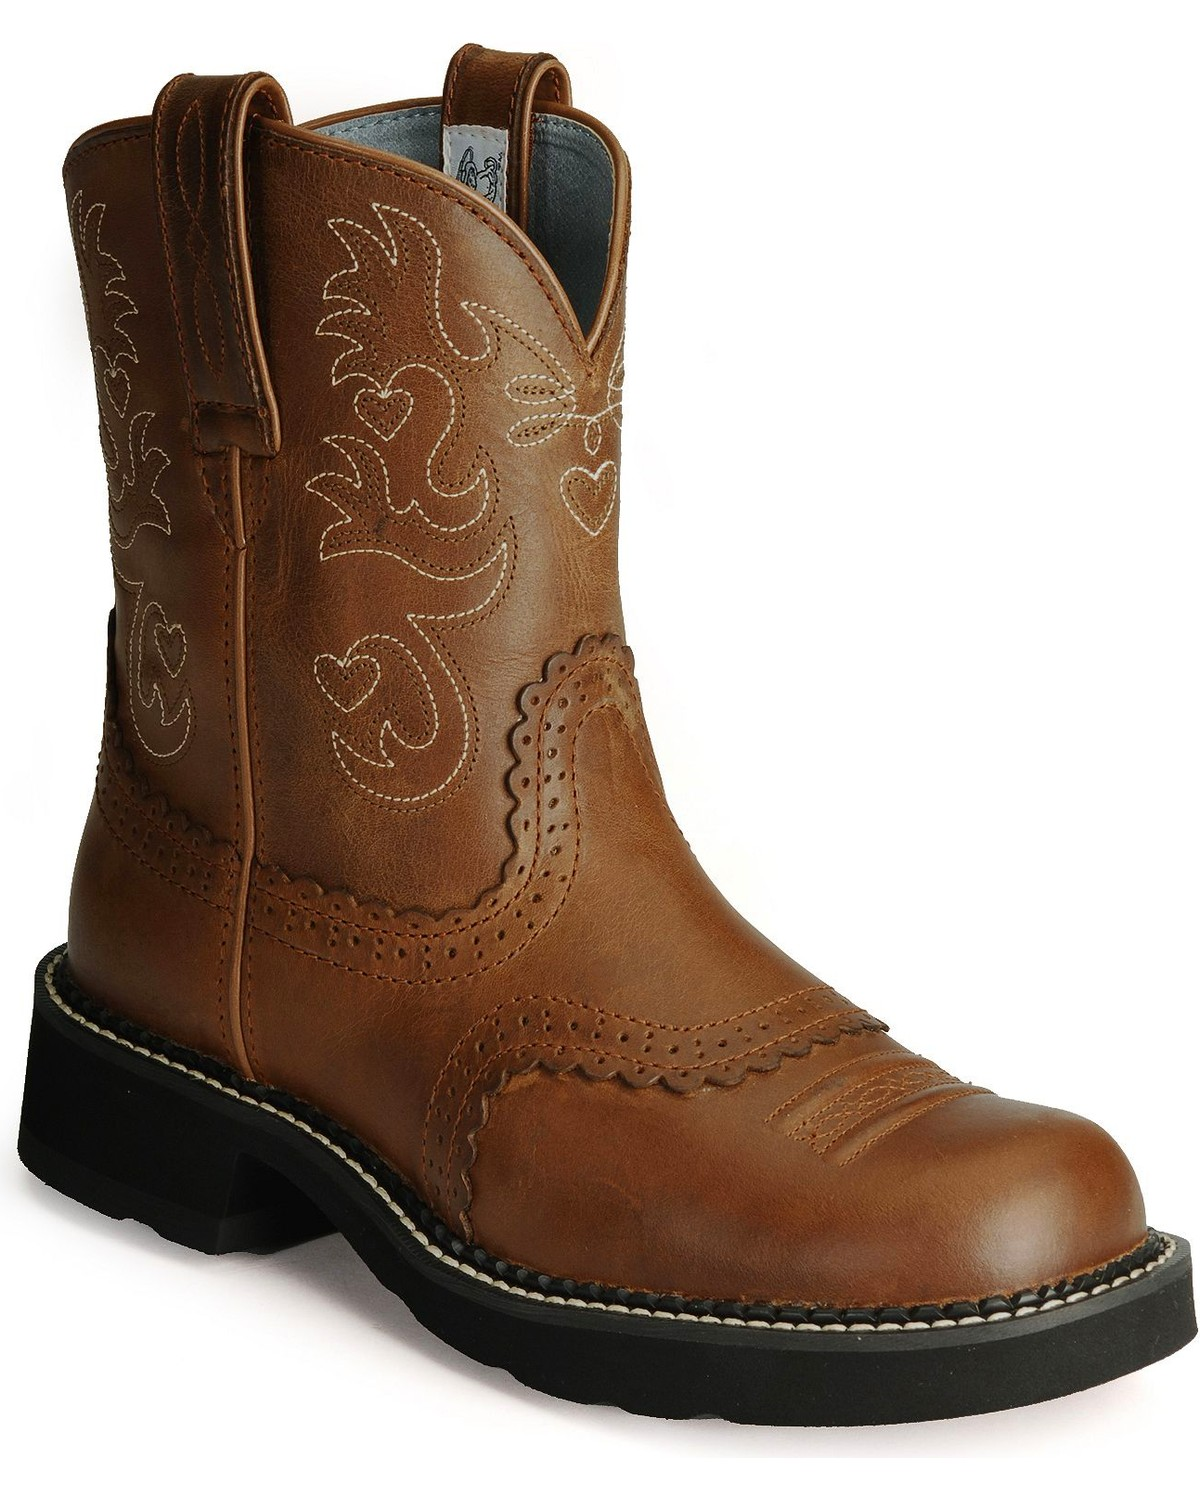 Ariat Fatbaby Cowgirl Boots | Sheplers